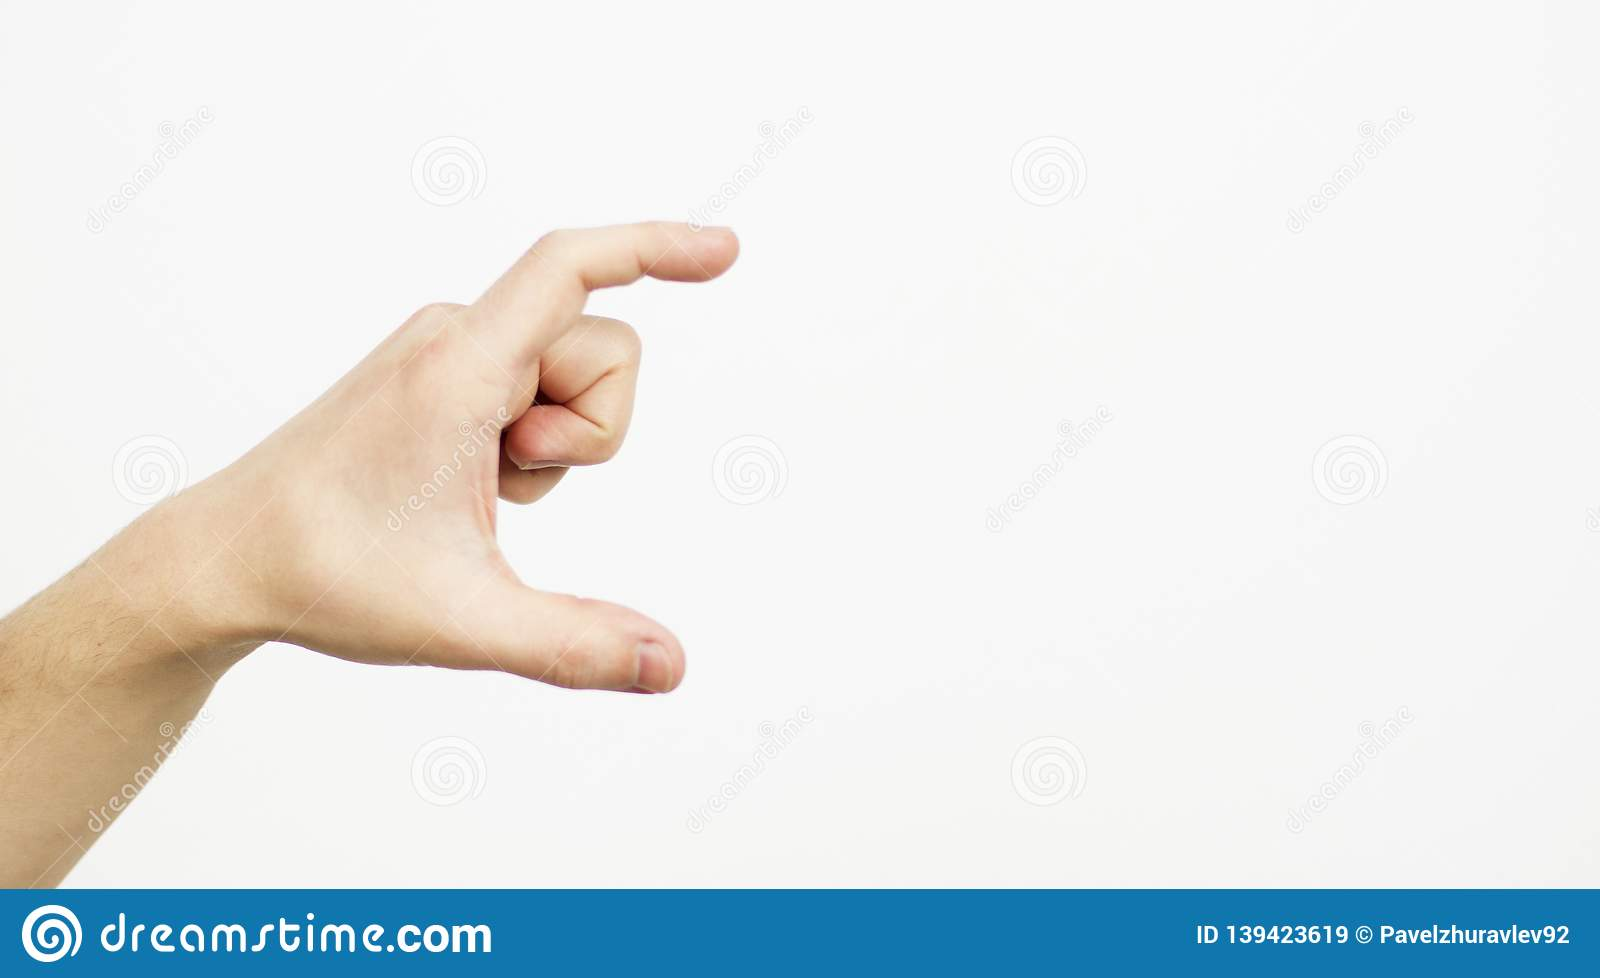 Hand Showing Size Gesture Isolated On White - Copy Space, Blank